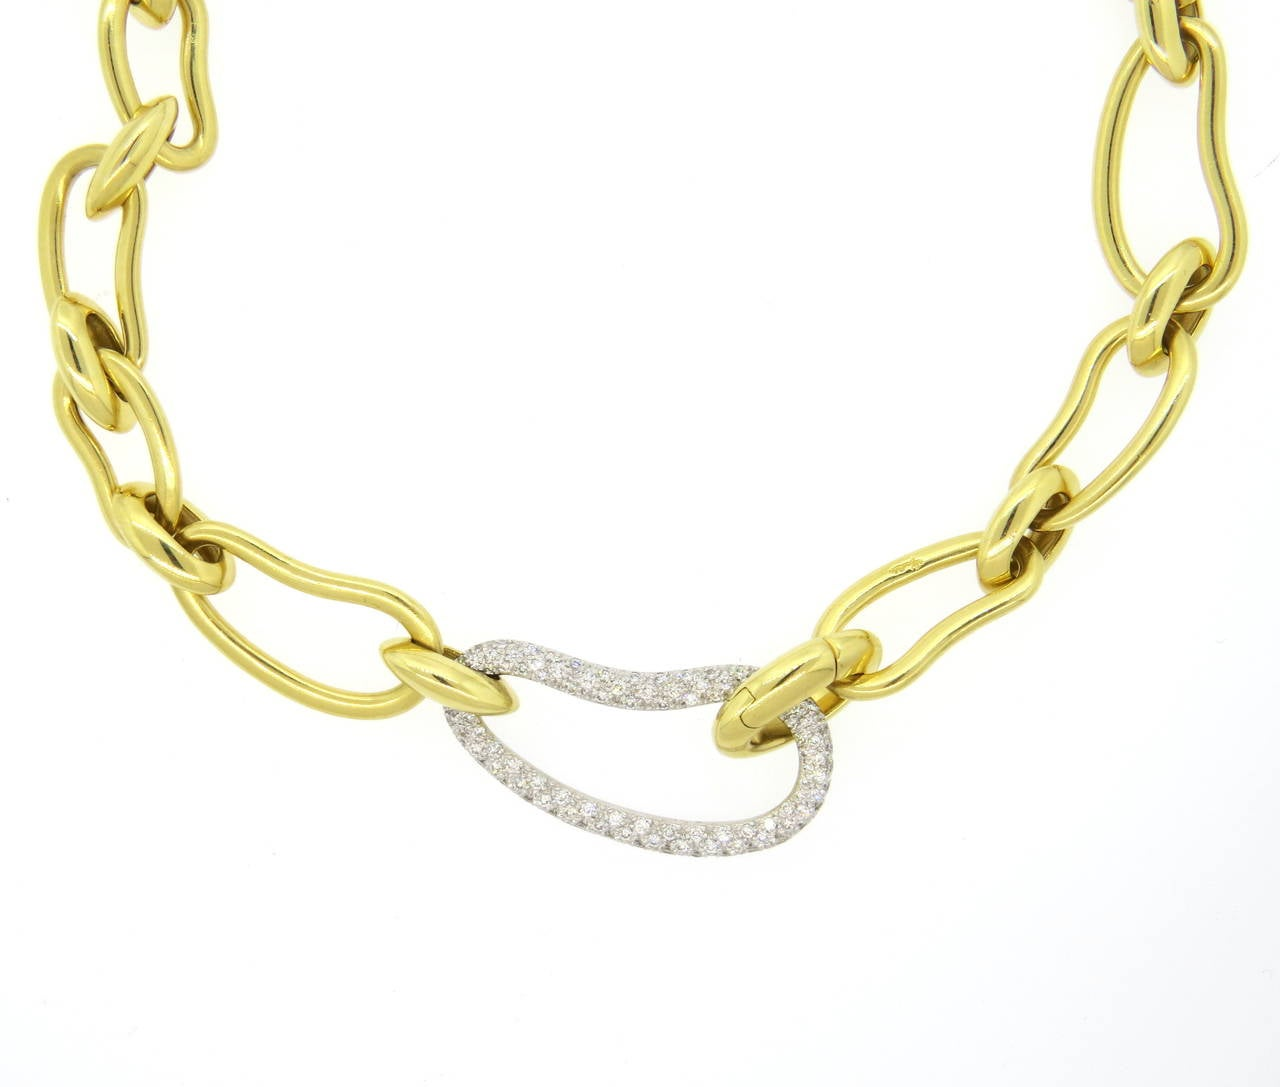 pomellato paisley gold large link necklace at 1stdibs